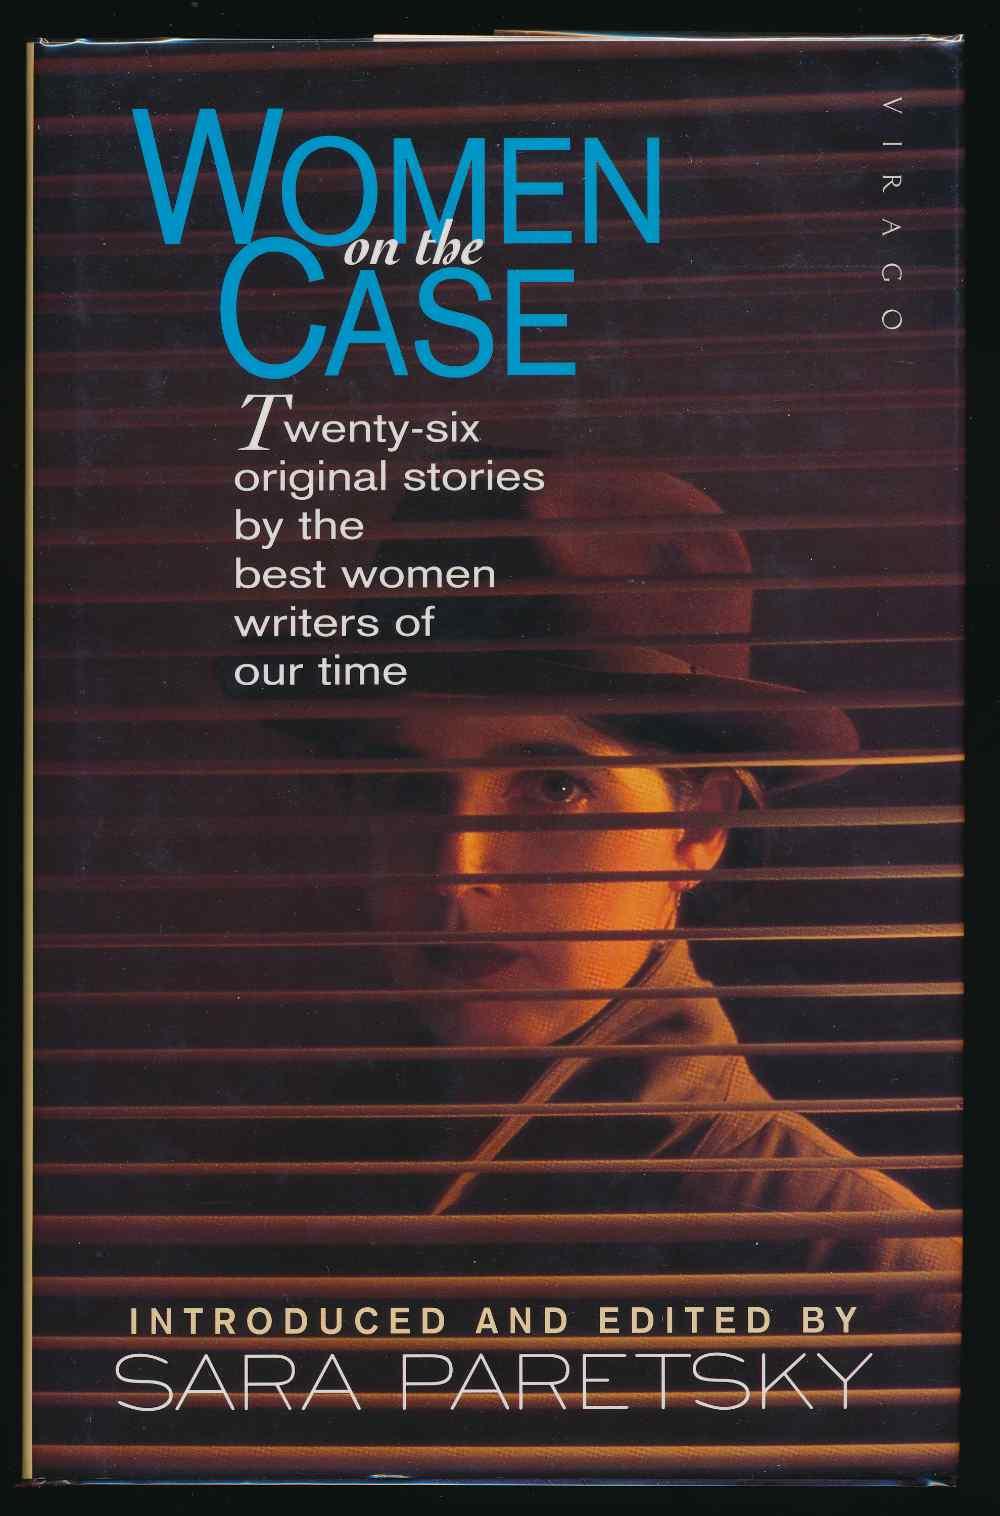 Women on the case